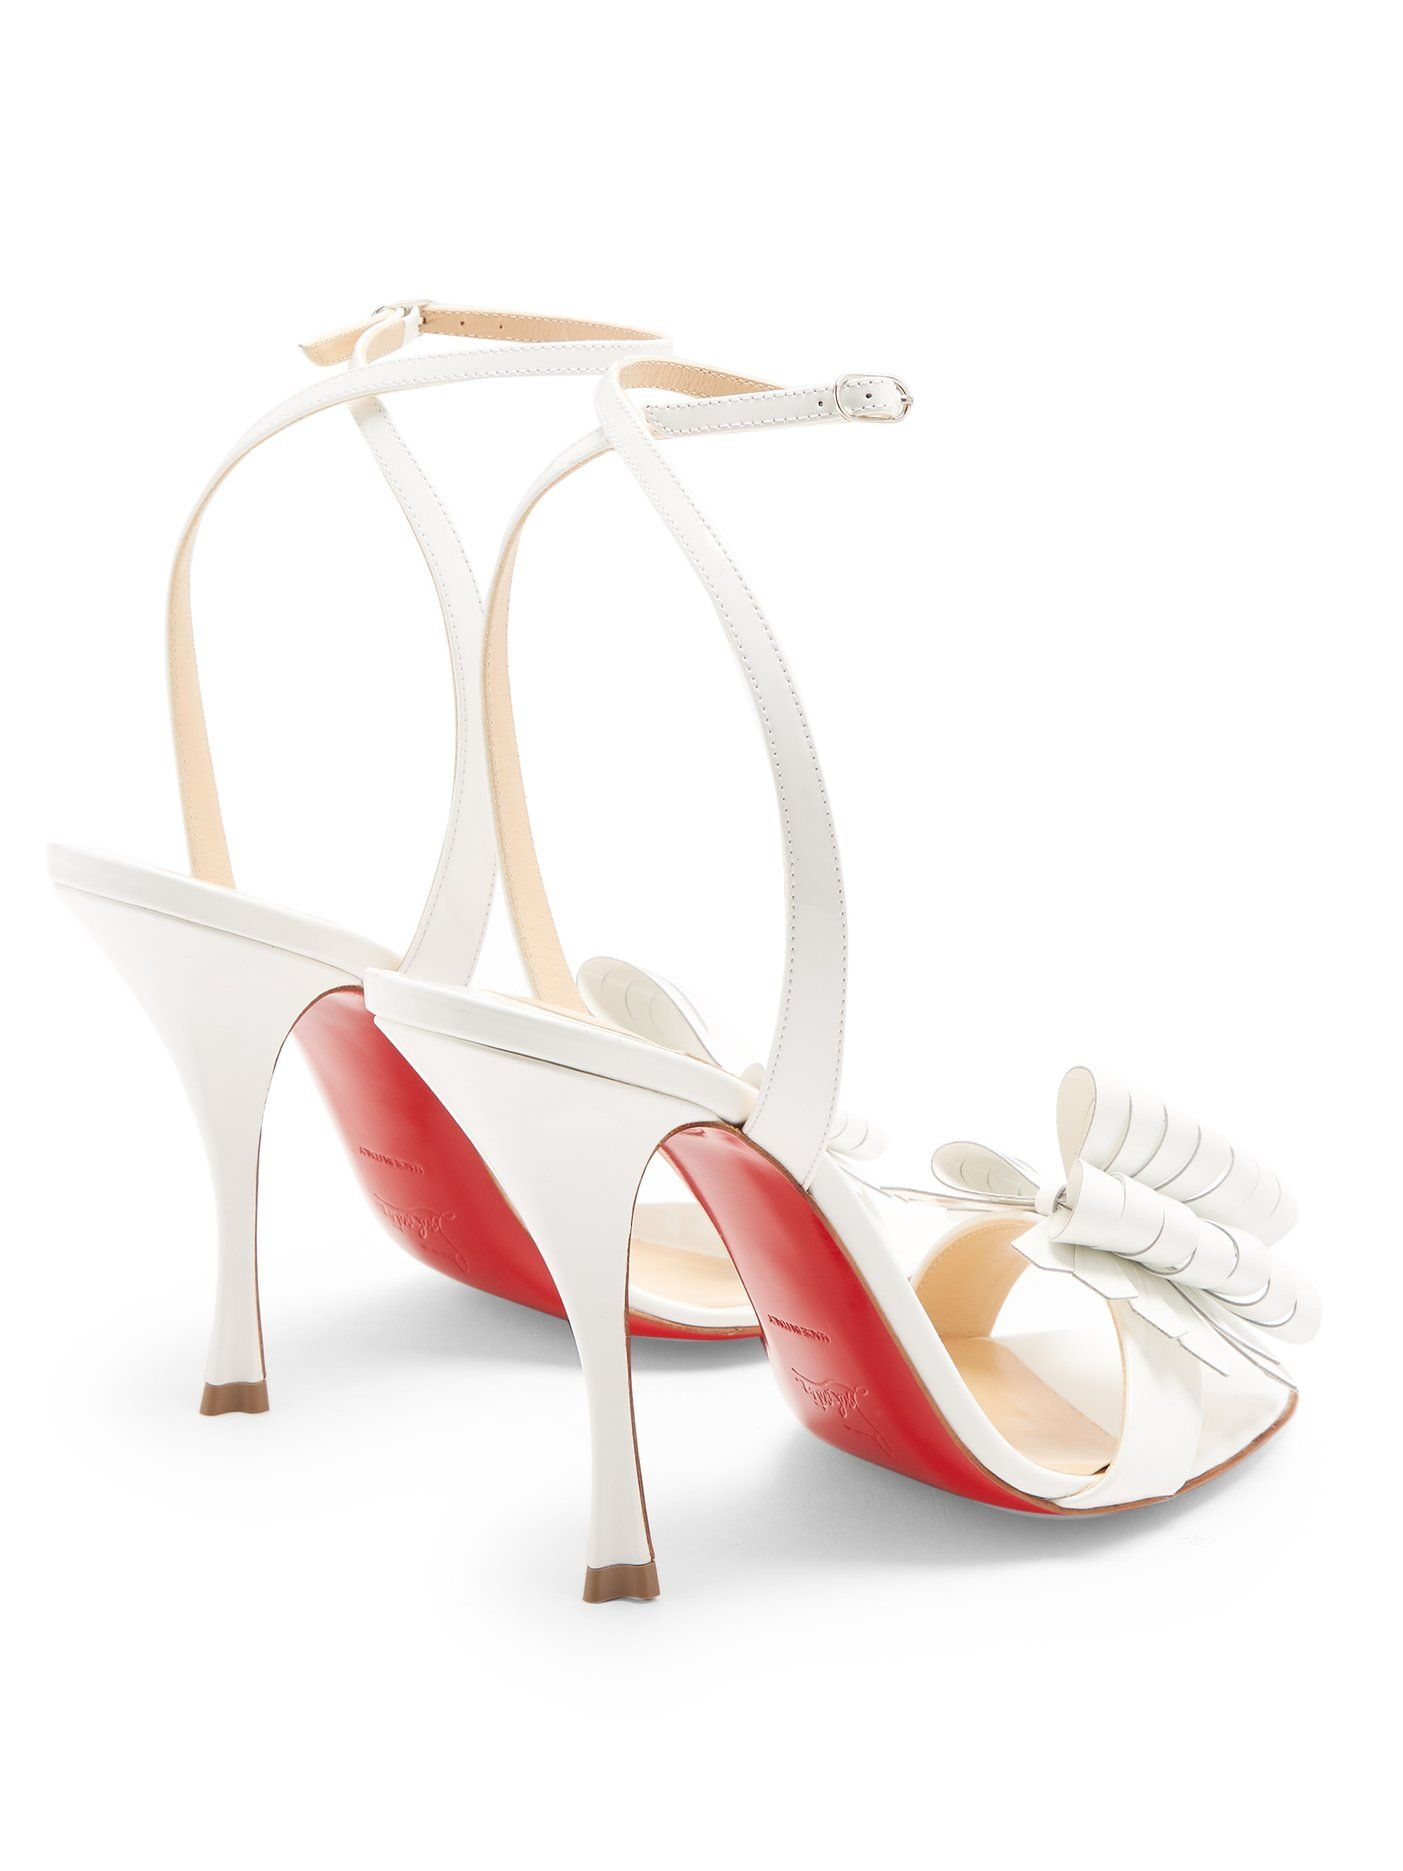 new concept 63202 944a2 Miss Valois 85 patent-leather sandals | Christian Louboutin ...